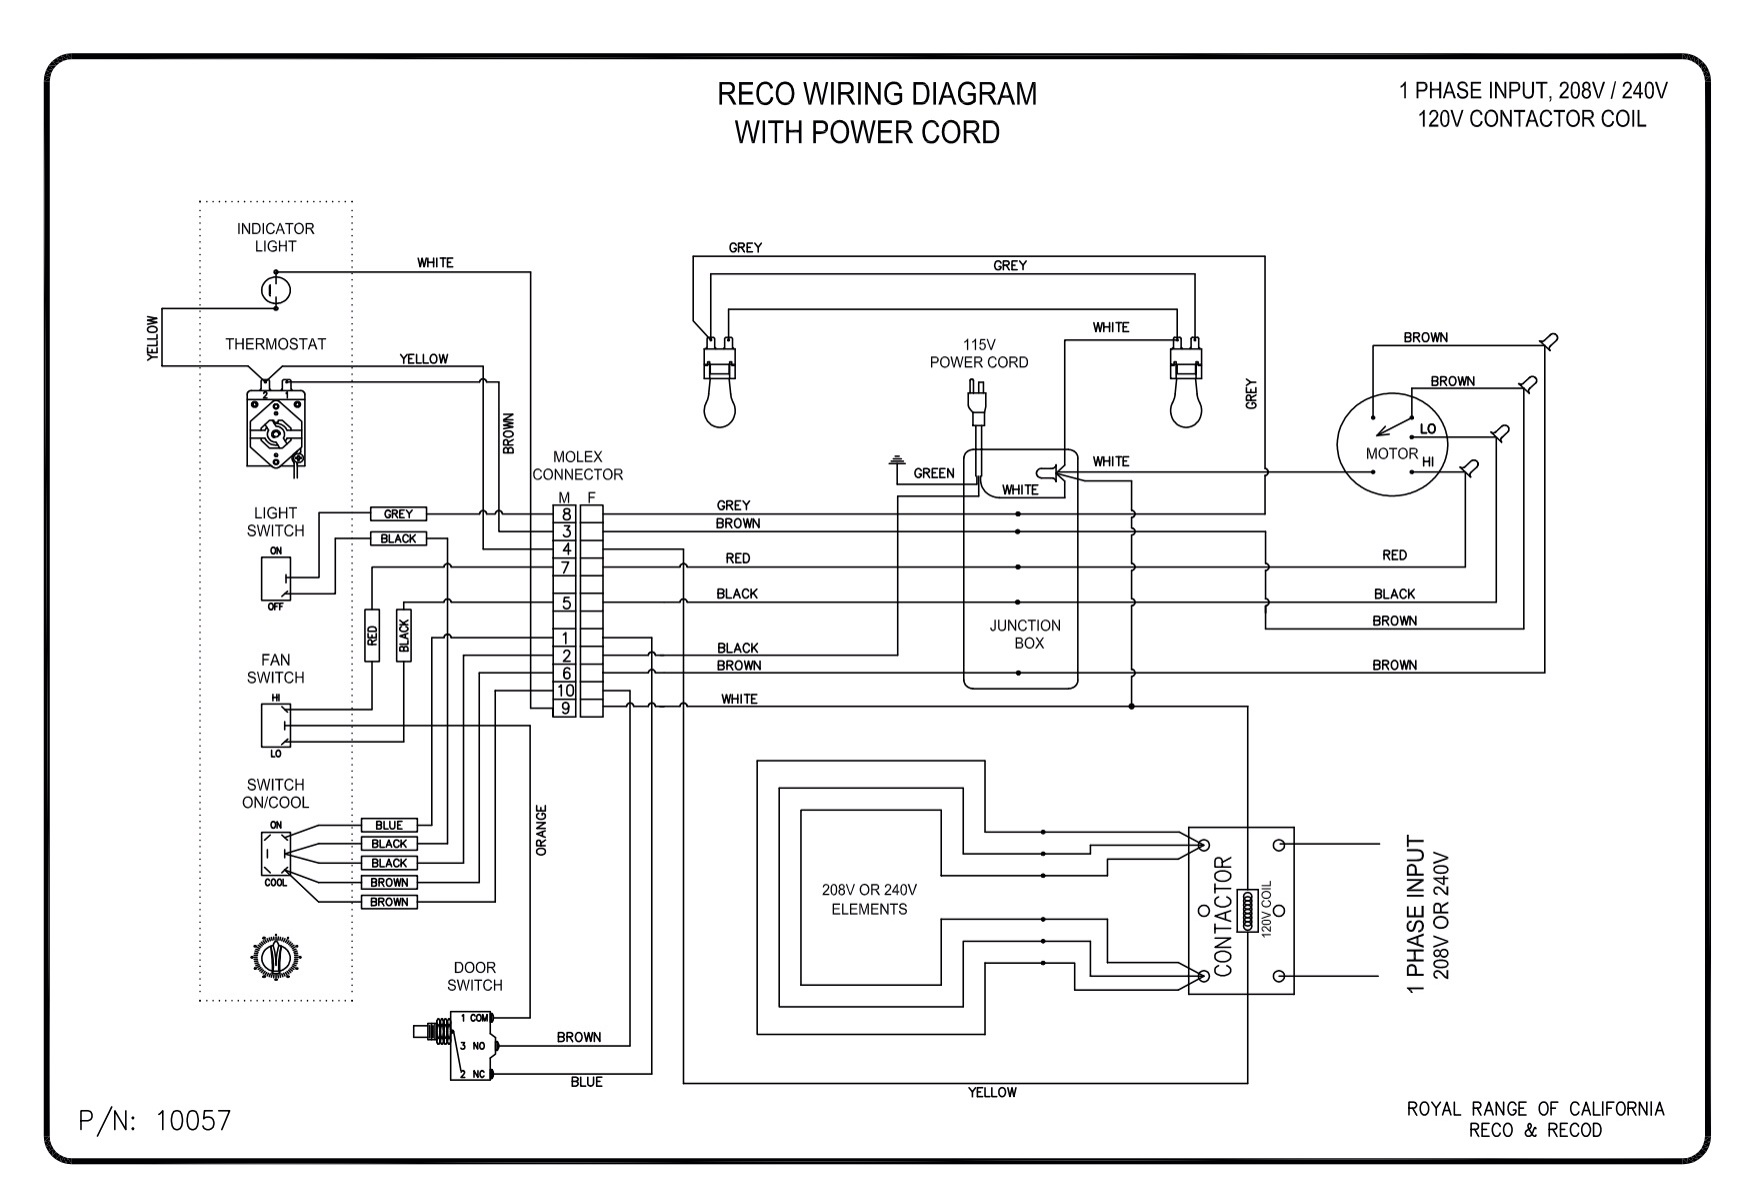 DIAGRAM] 240 Wiring Diagram FULL Version HD Quality Wiring Diagram -  DIAGRAMAEXPRESS.CONSERVATOIRE-CHANTERIE.FRdiagramaexpress.conservatoire-chanterie.fr